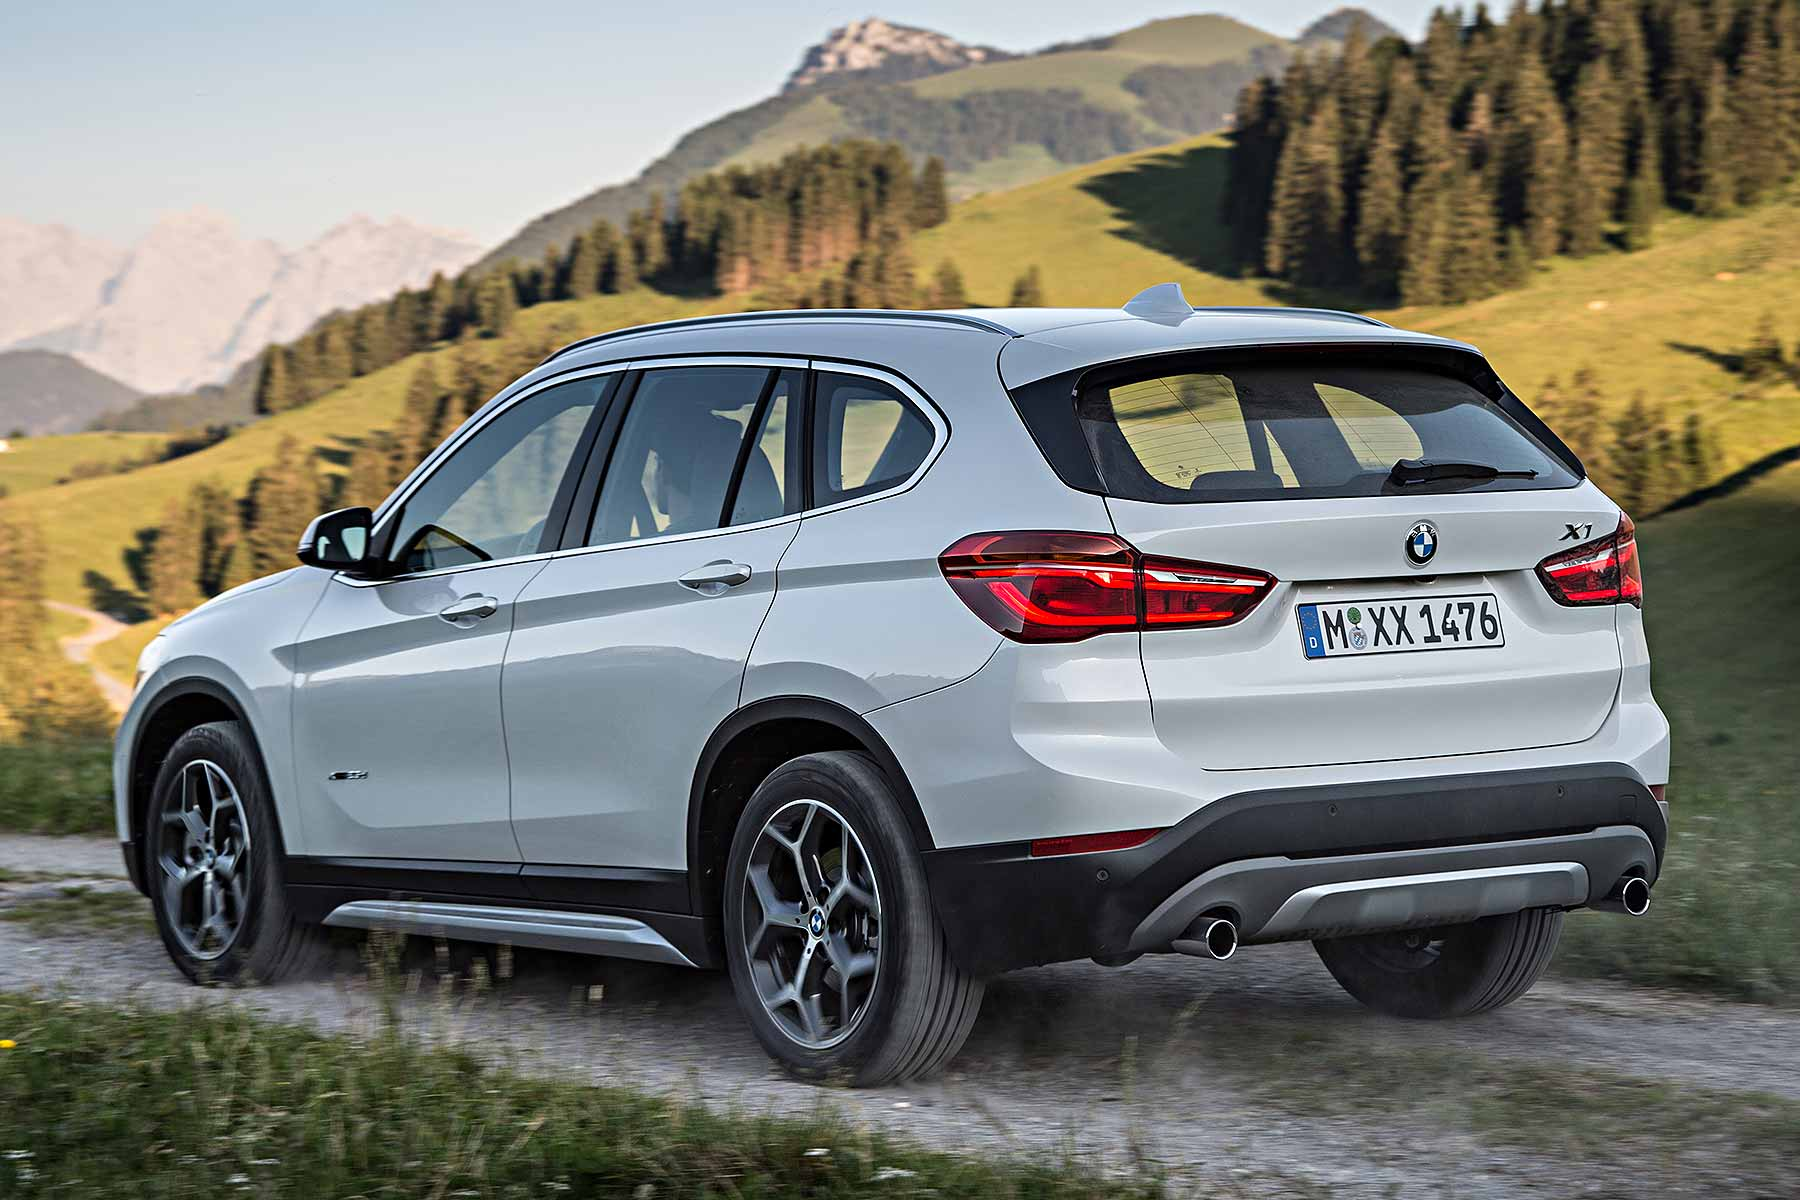 2015 Bmw X 1 Review 2017 2018 Best Cars Reviews